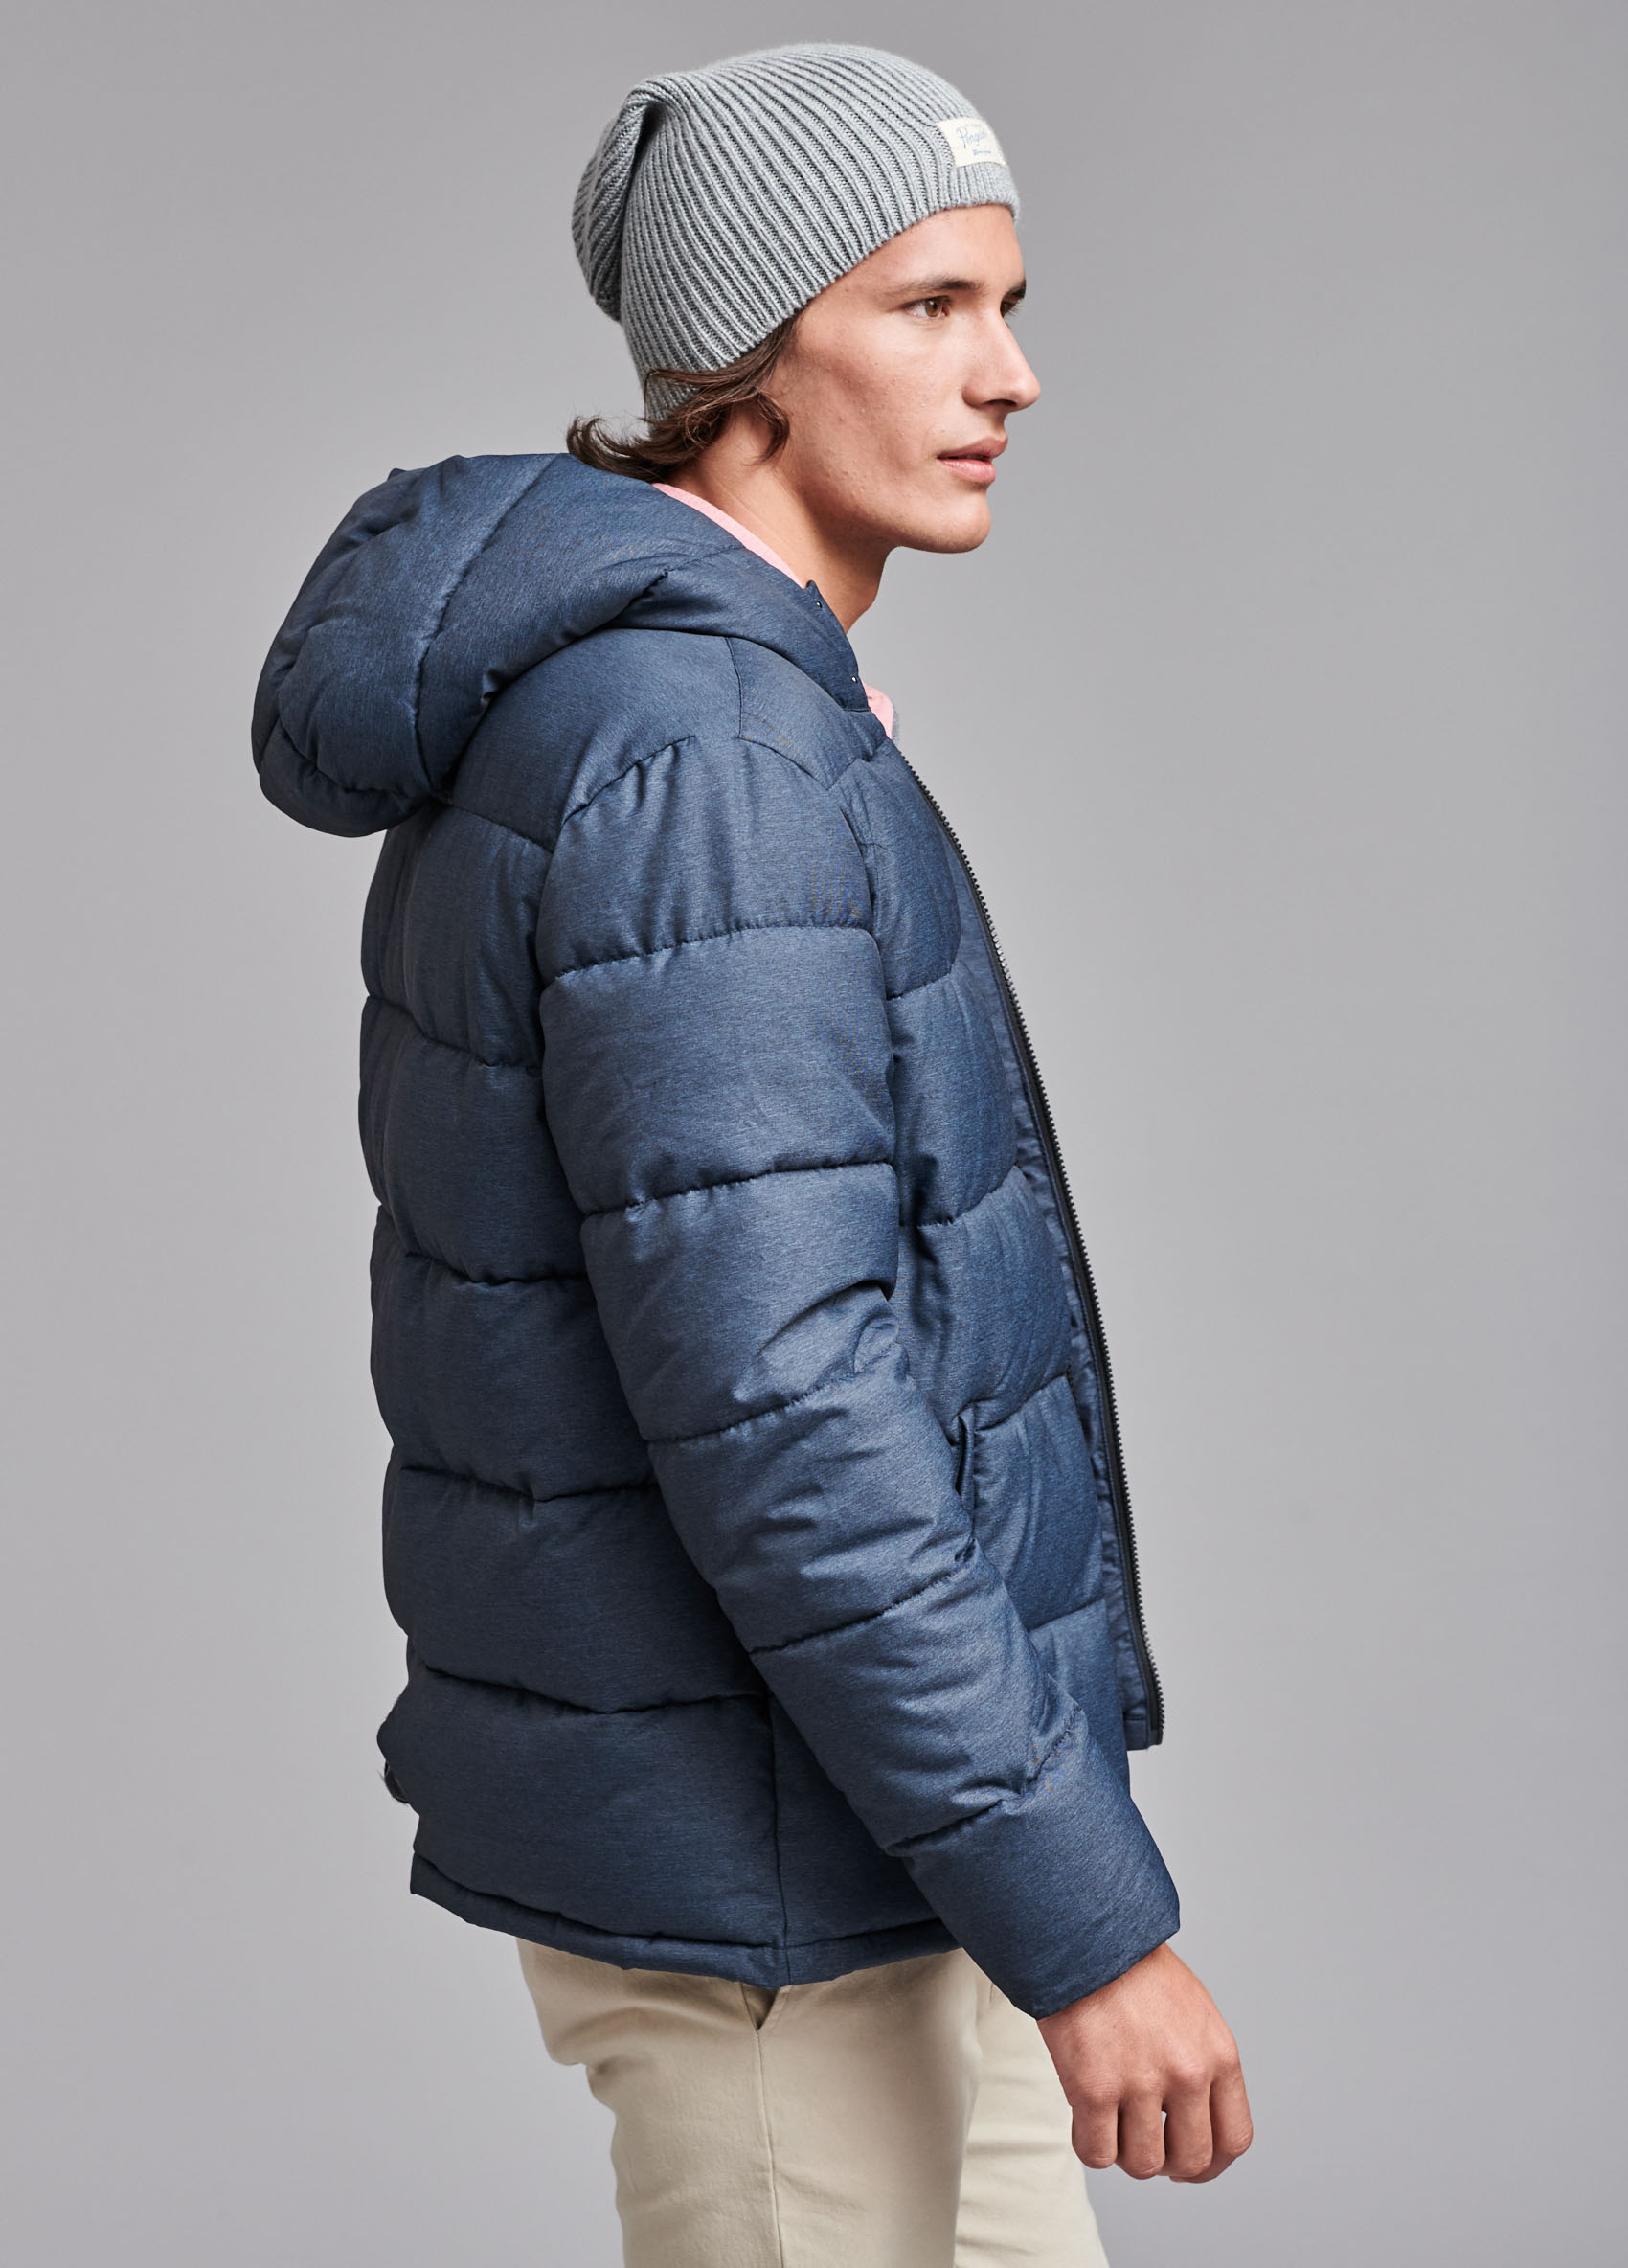 penguin_insulated-melange-puffer-jacket_58-15-2019__picture-8936